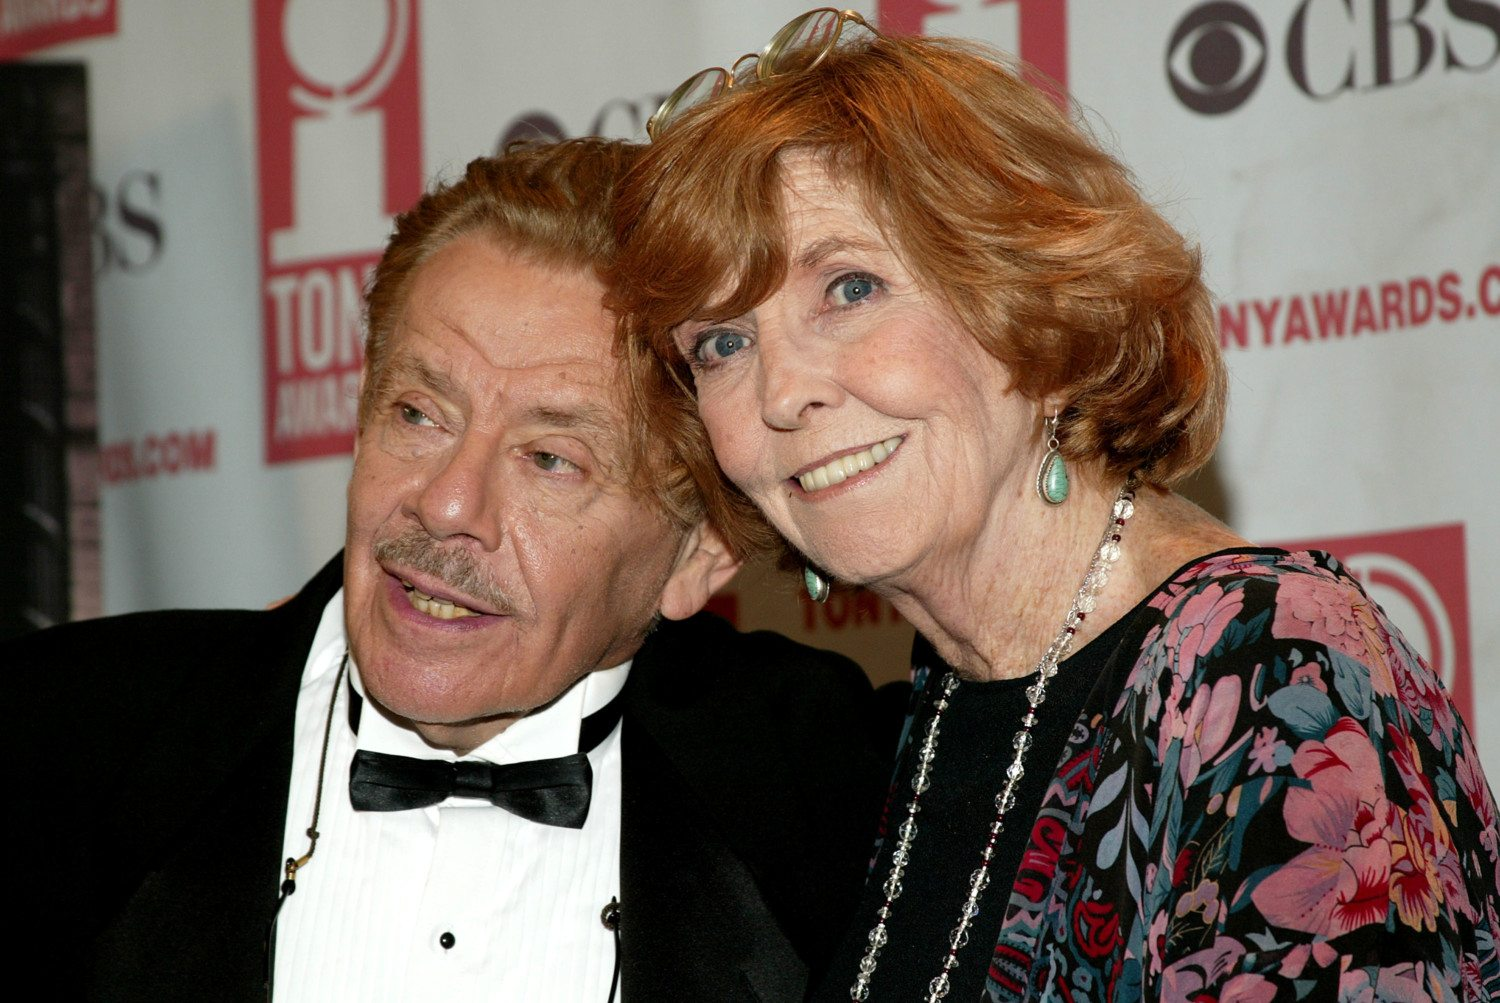 """Jerry Stiller and Anne Meara attend the """"58th Annual Tony Awards"""" at Radio City Music Hall on June 6, 2004 in New York City. 